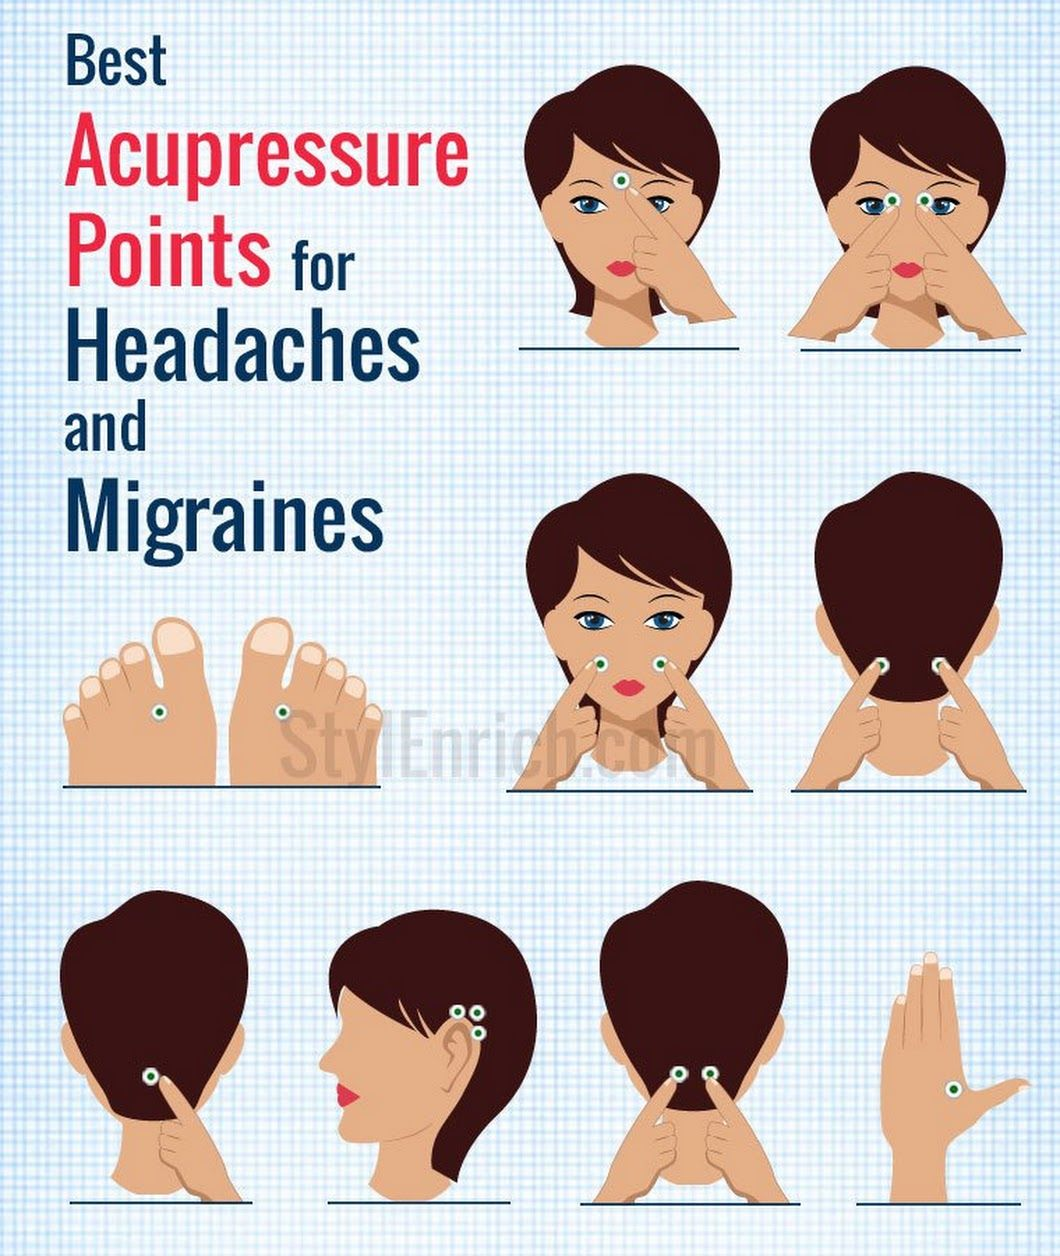 Face Pressure Points Diagram Root Cause Fishbone Template Acupressure For Headache And Migraines Quick